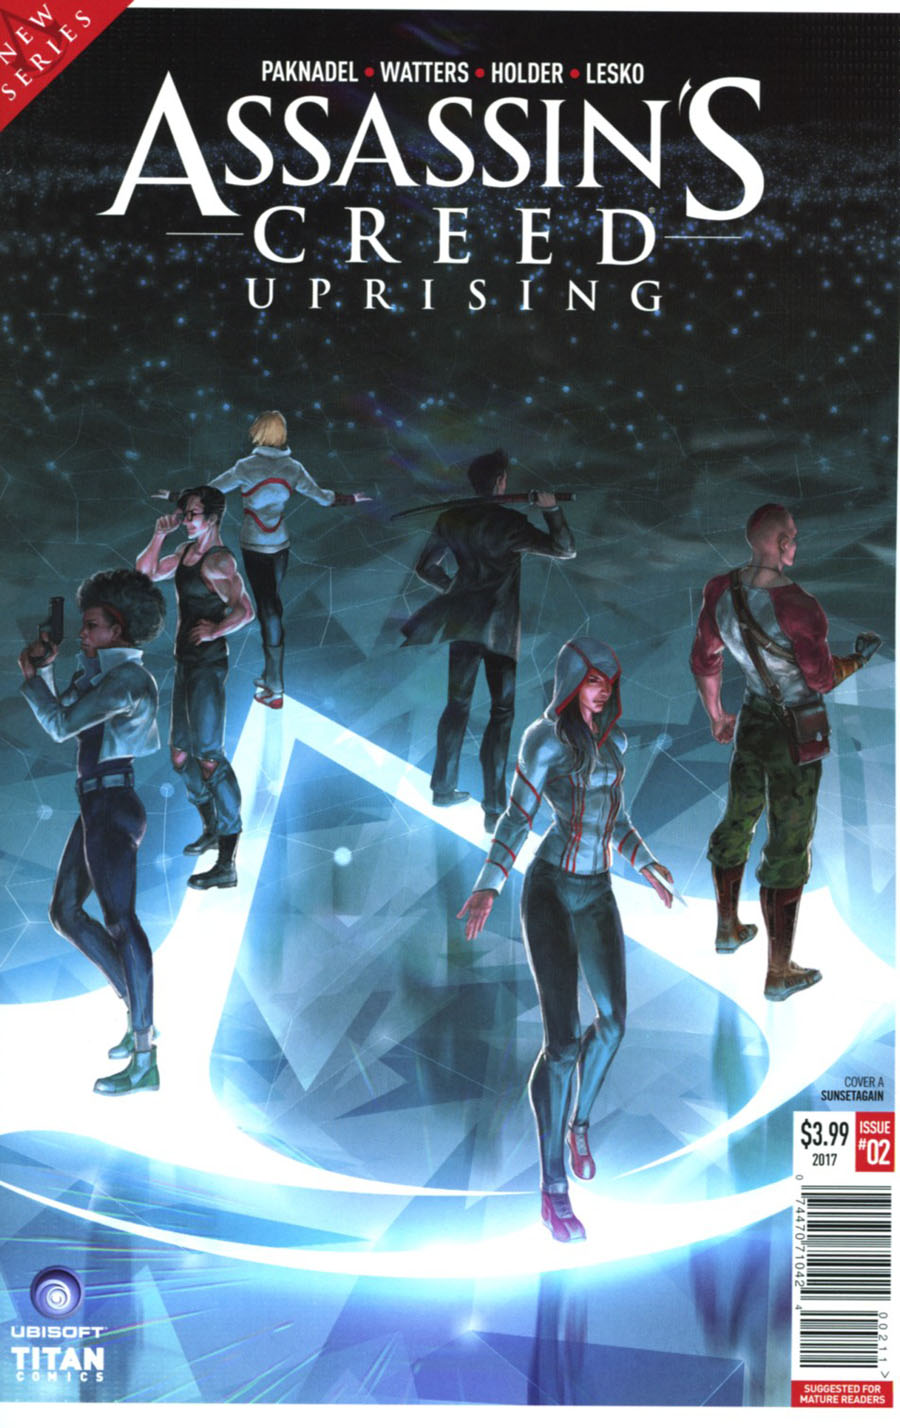 Assassins Creed Uprising #2 Cover A Regular Sunsetagain Cover